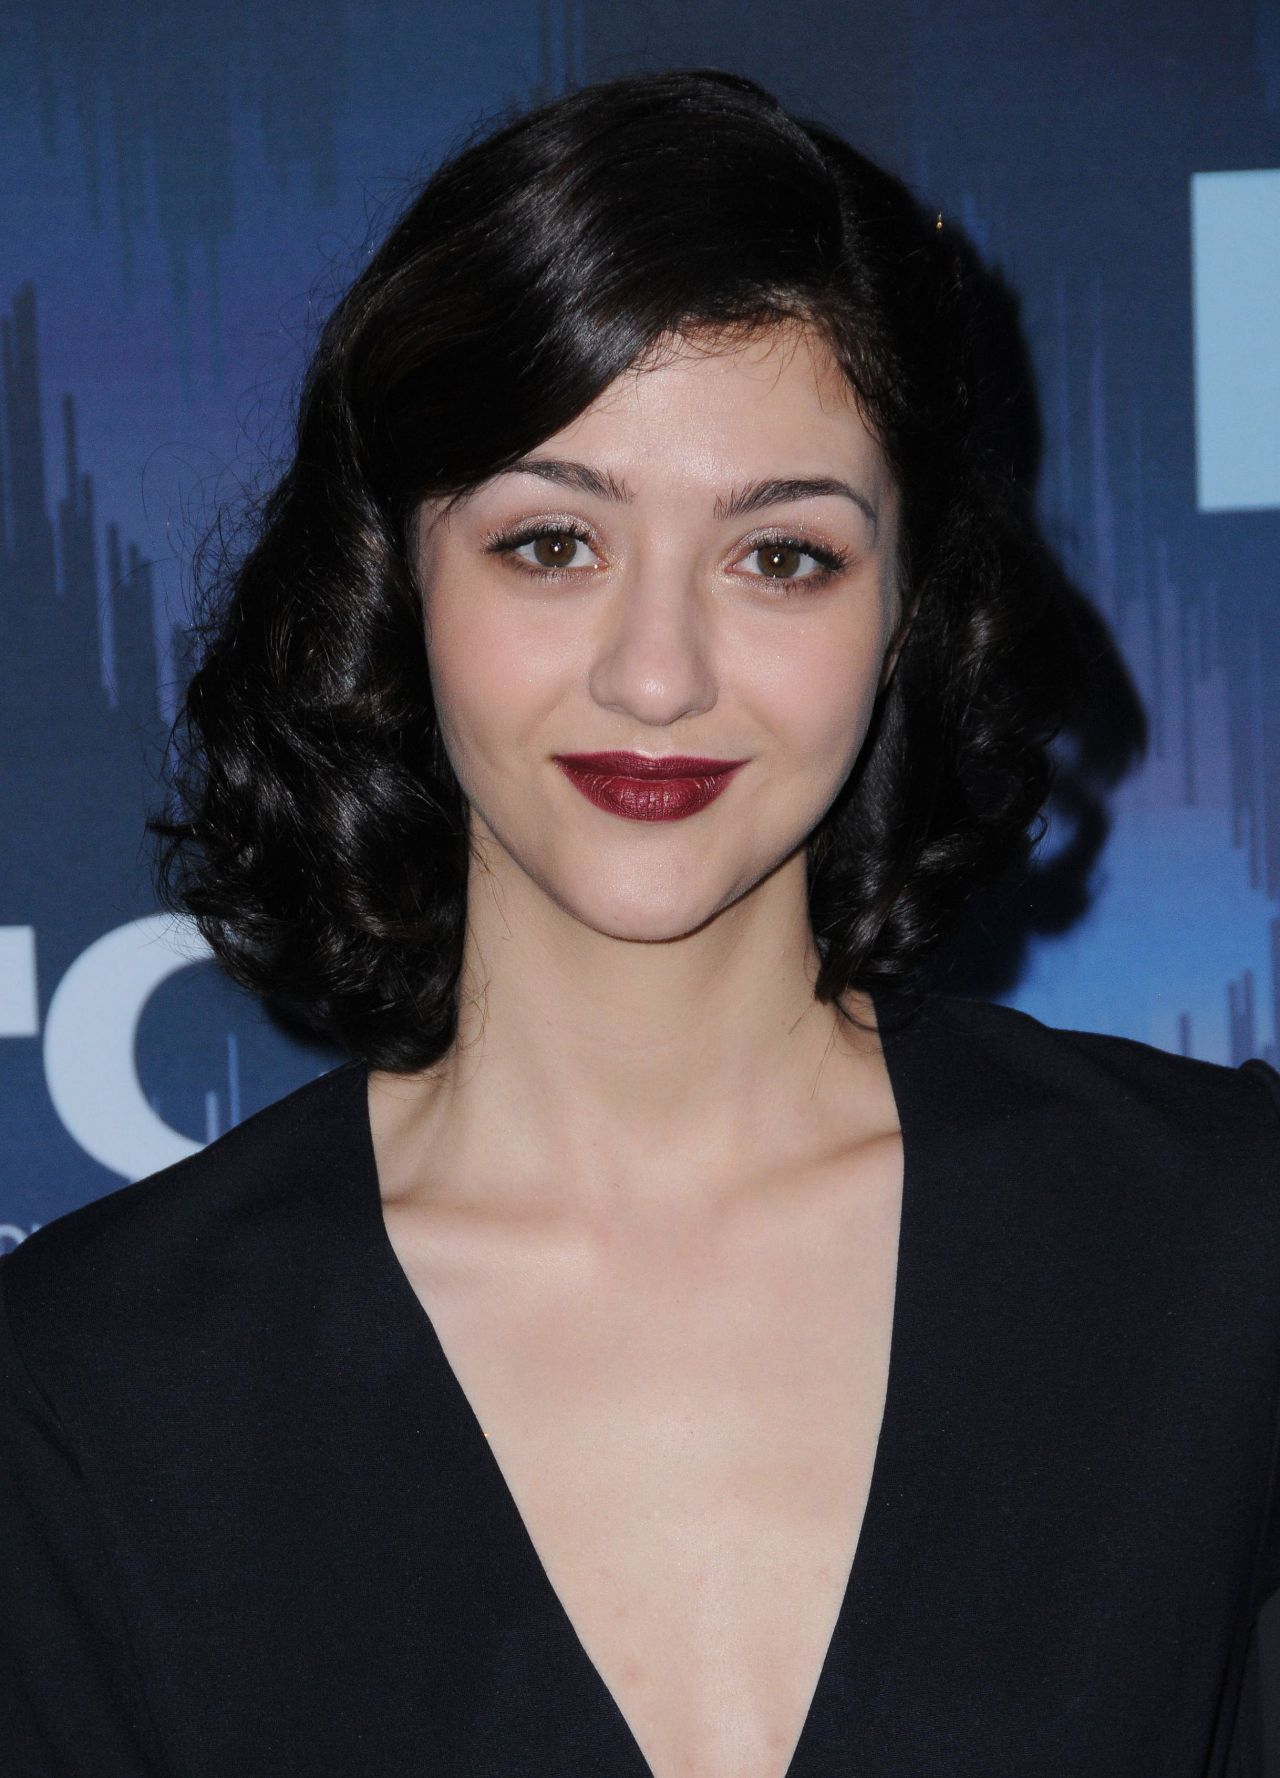 Katie Findlay nude (41 photo) Sideboobs, YouTube, braless